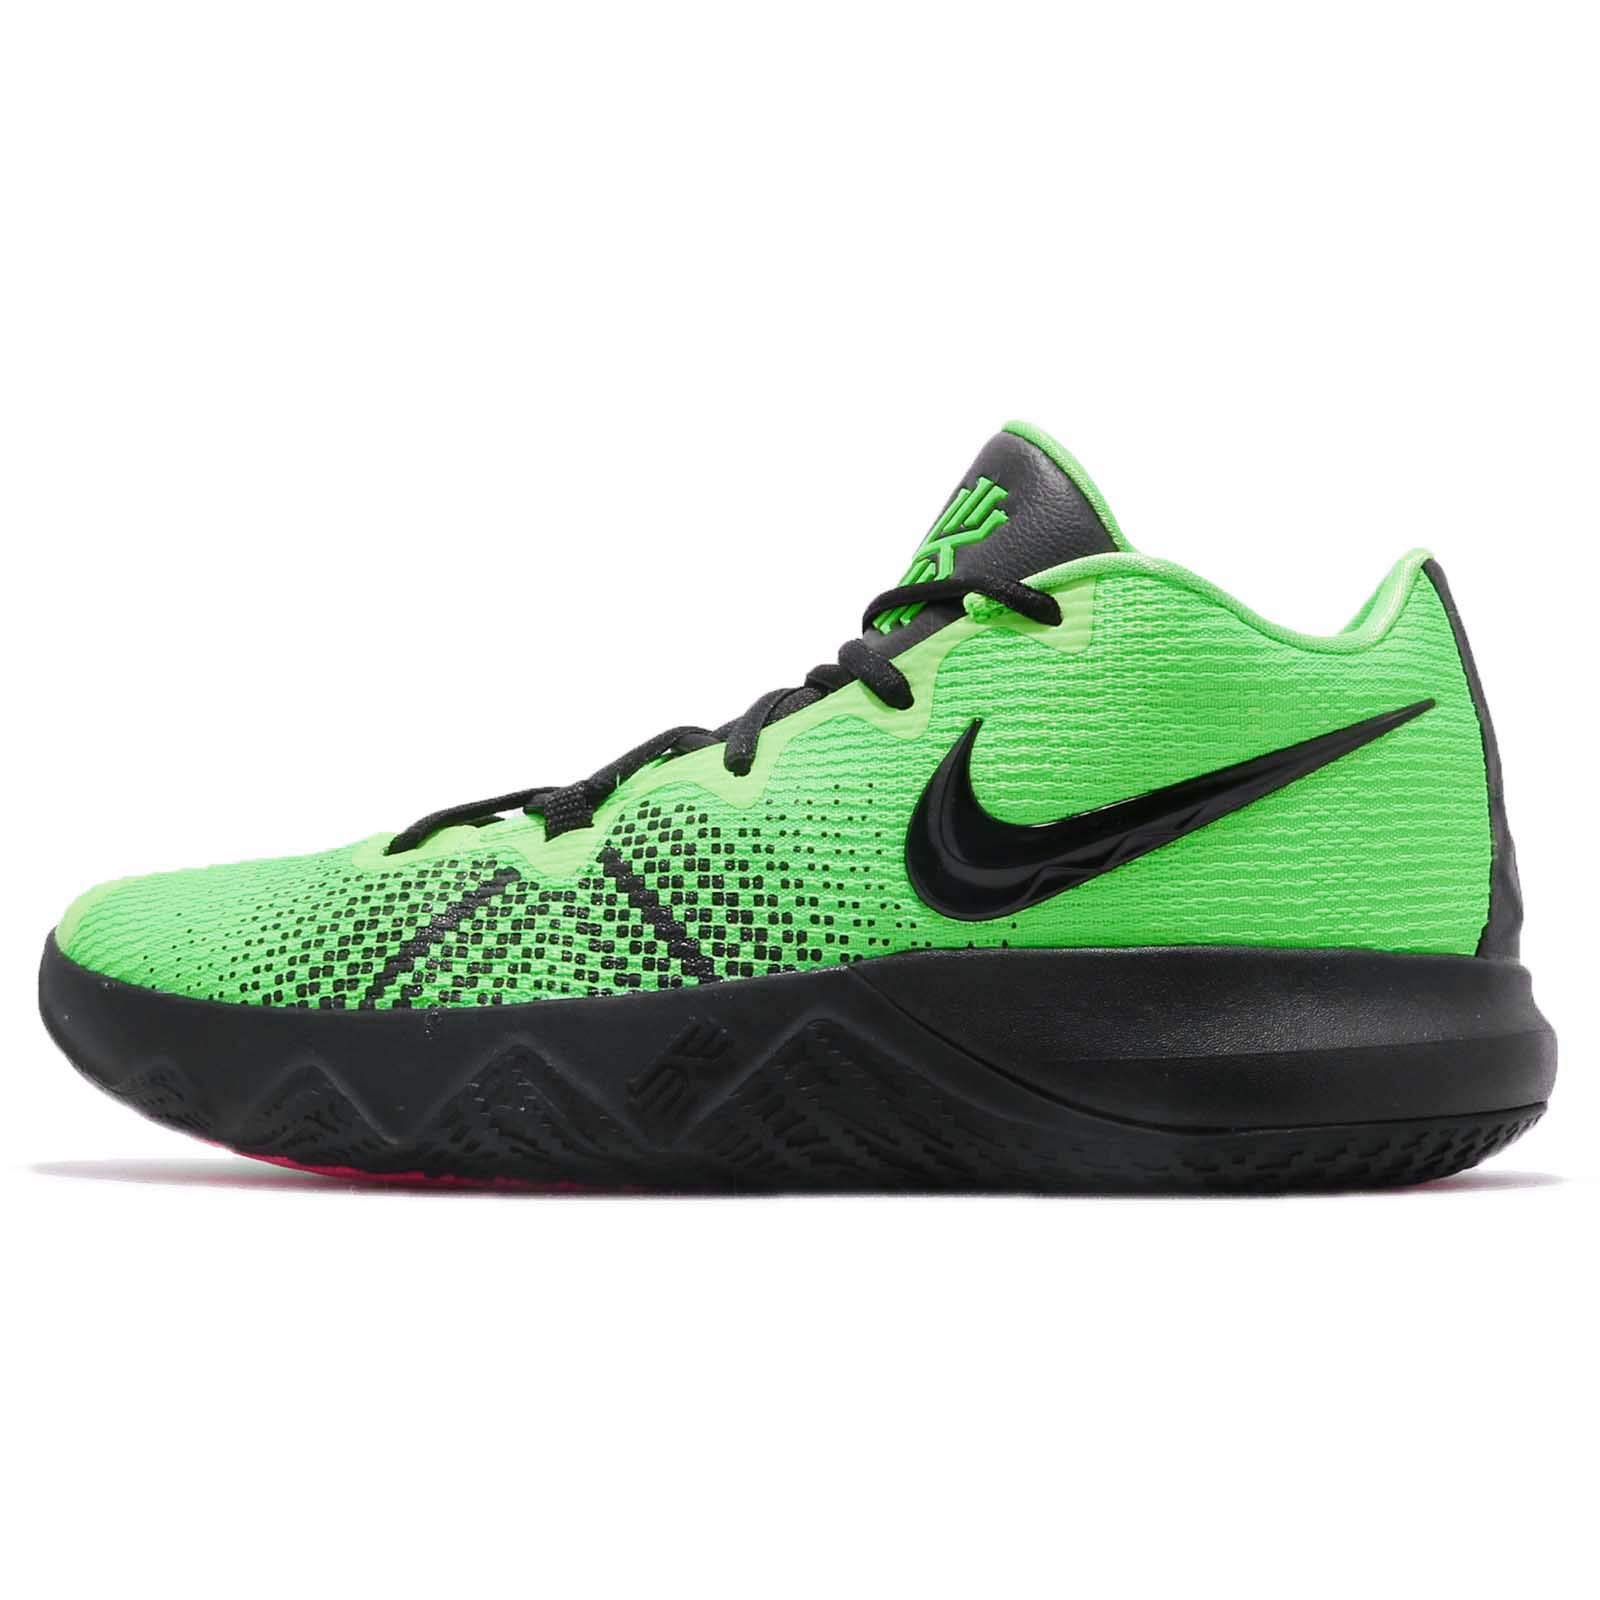 d9d419033f79 Galleon - Nike Men s Kyrie Flytrap EP